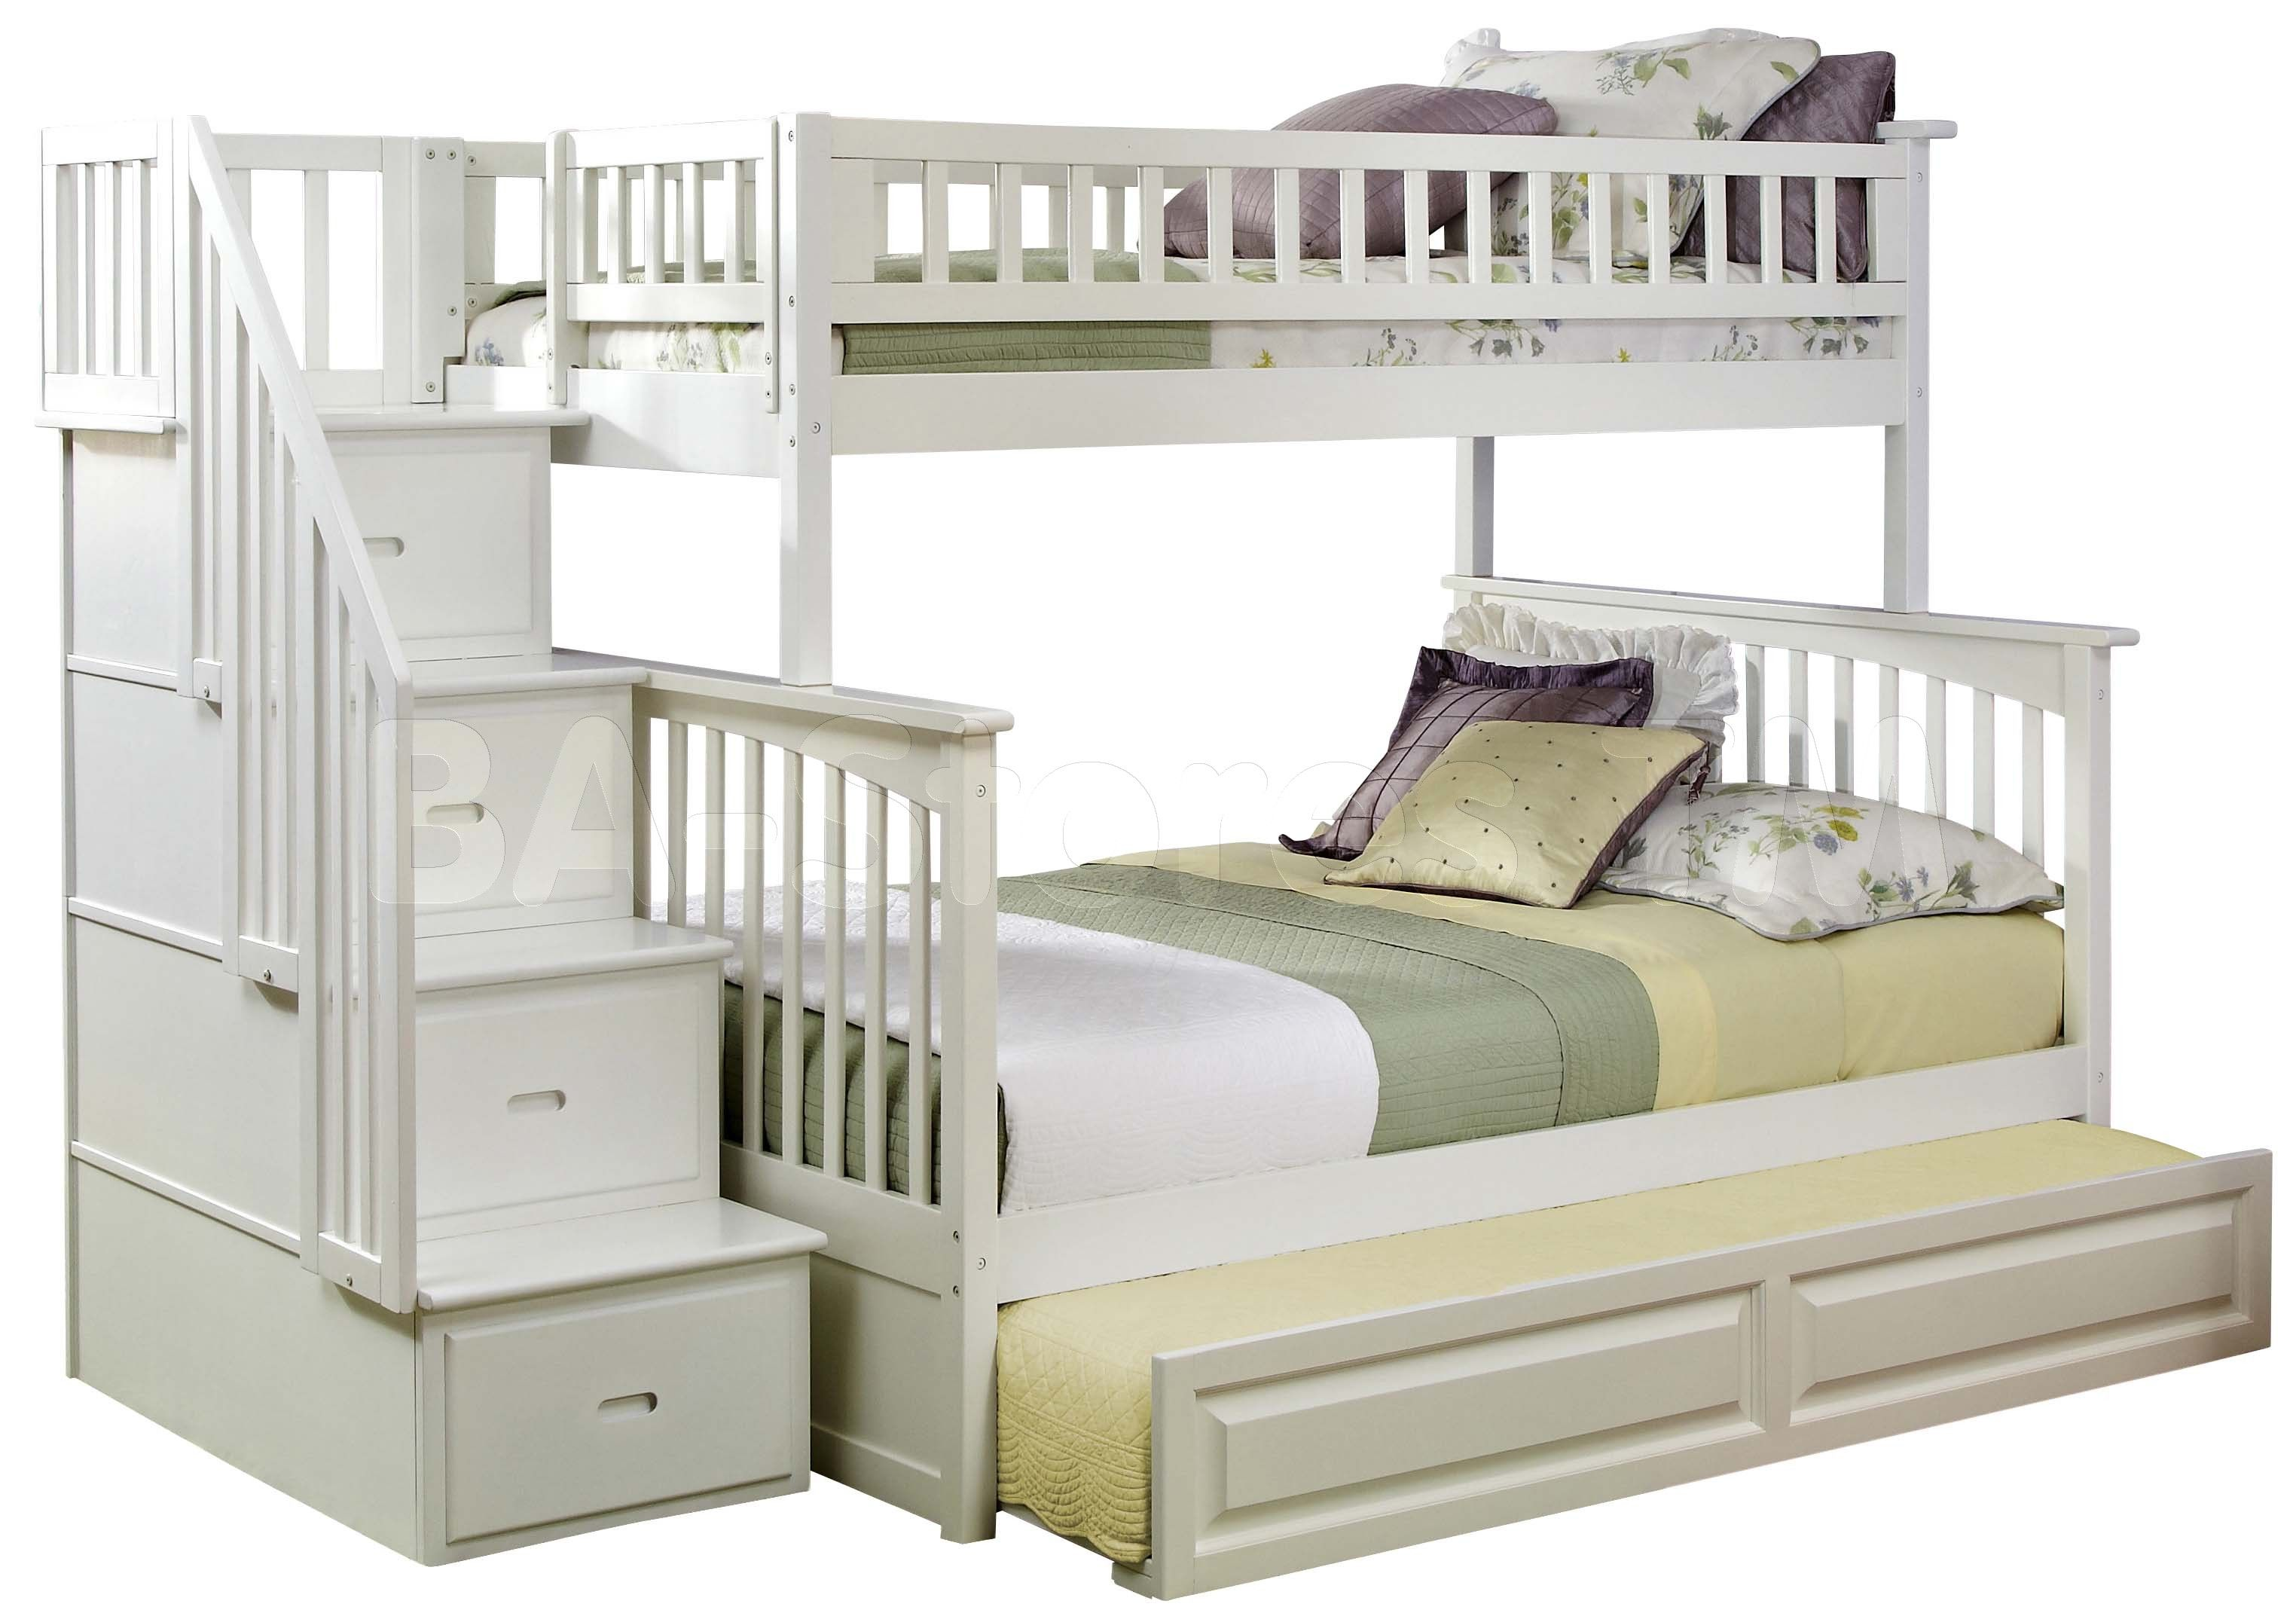 Classic Queen Twin Bunk Beds Click To Enlarge I Like The